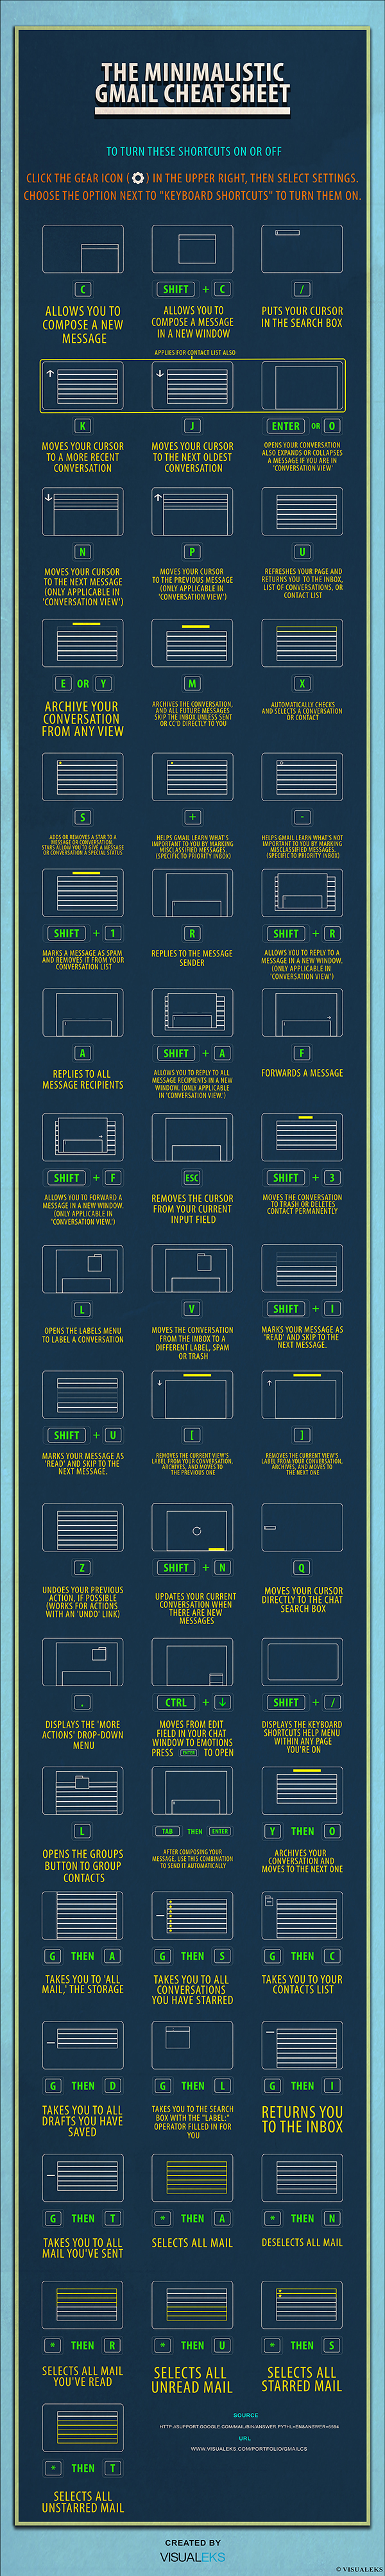 work gmail infographic